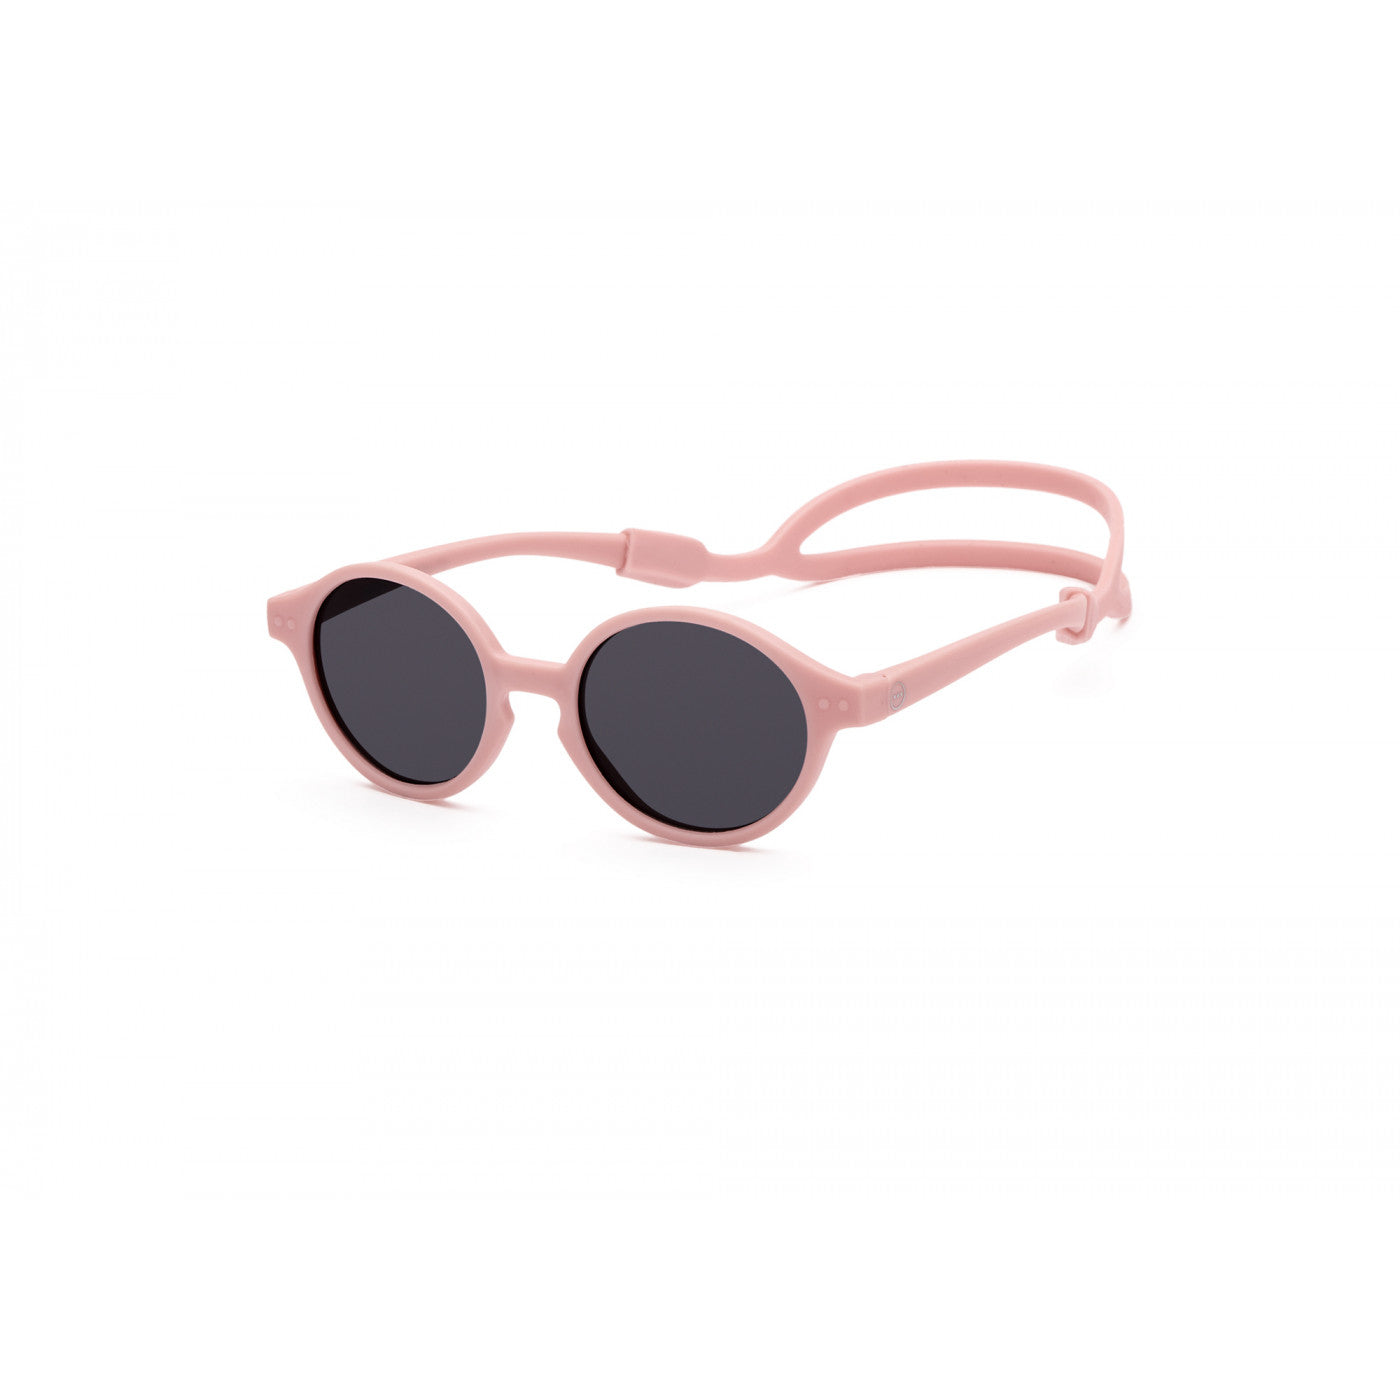 SUN KIDS BABY SUNGLASSES / 12-36 MONTHS / PASTEL PINK